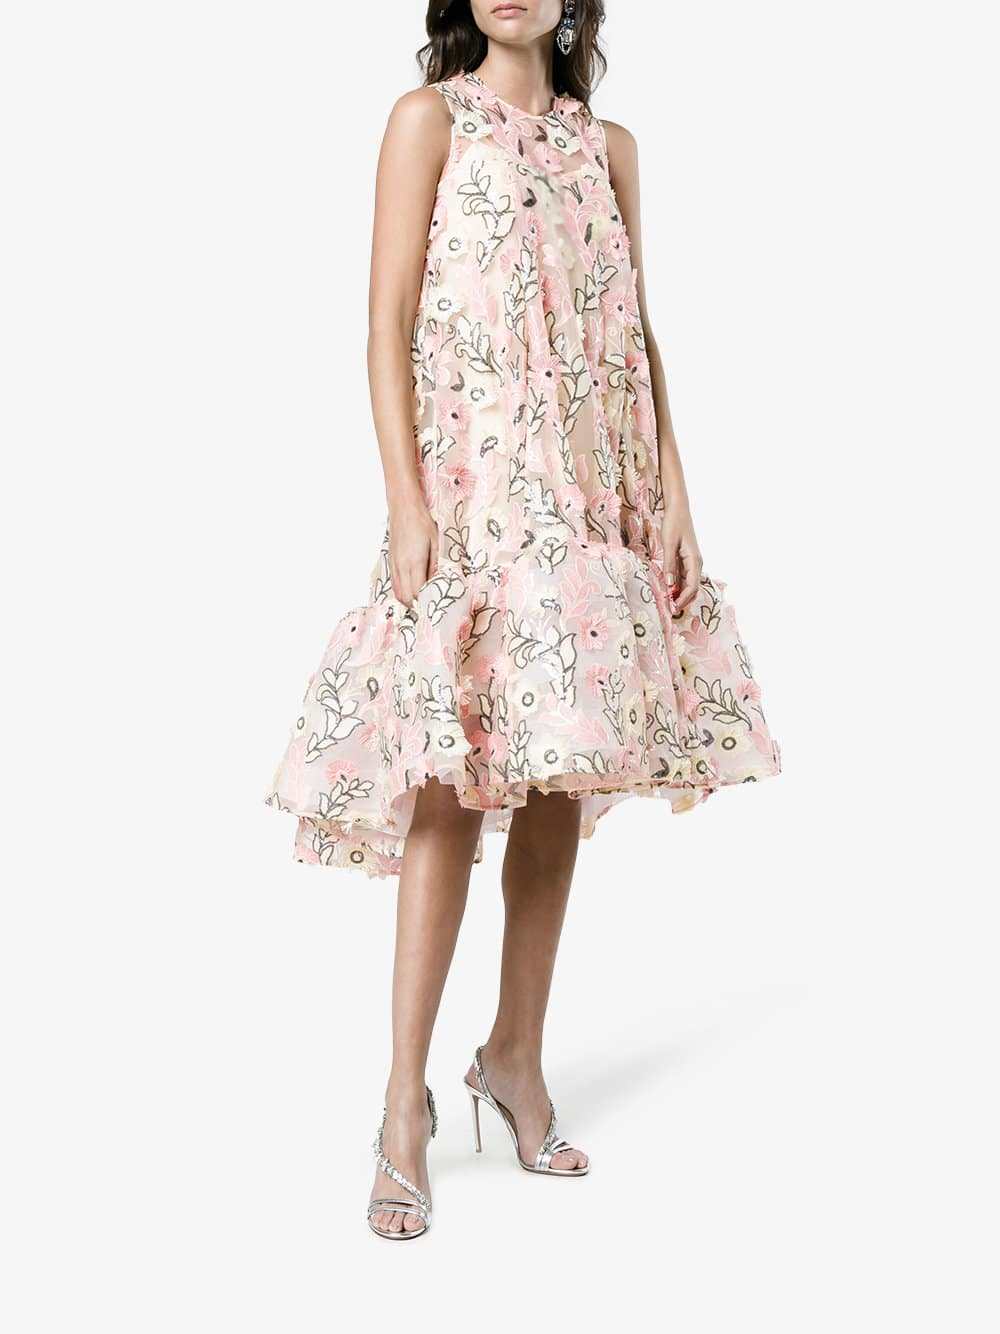 fbe9d5f3abd HUISHAN ZHANG Jodie Floral Embroidered Pink   Multicolored Dress